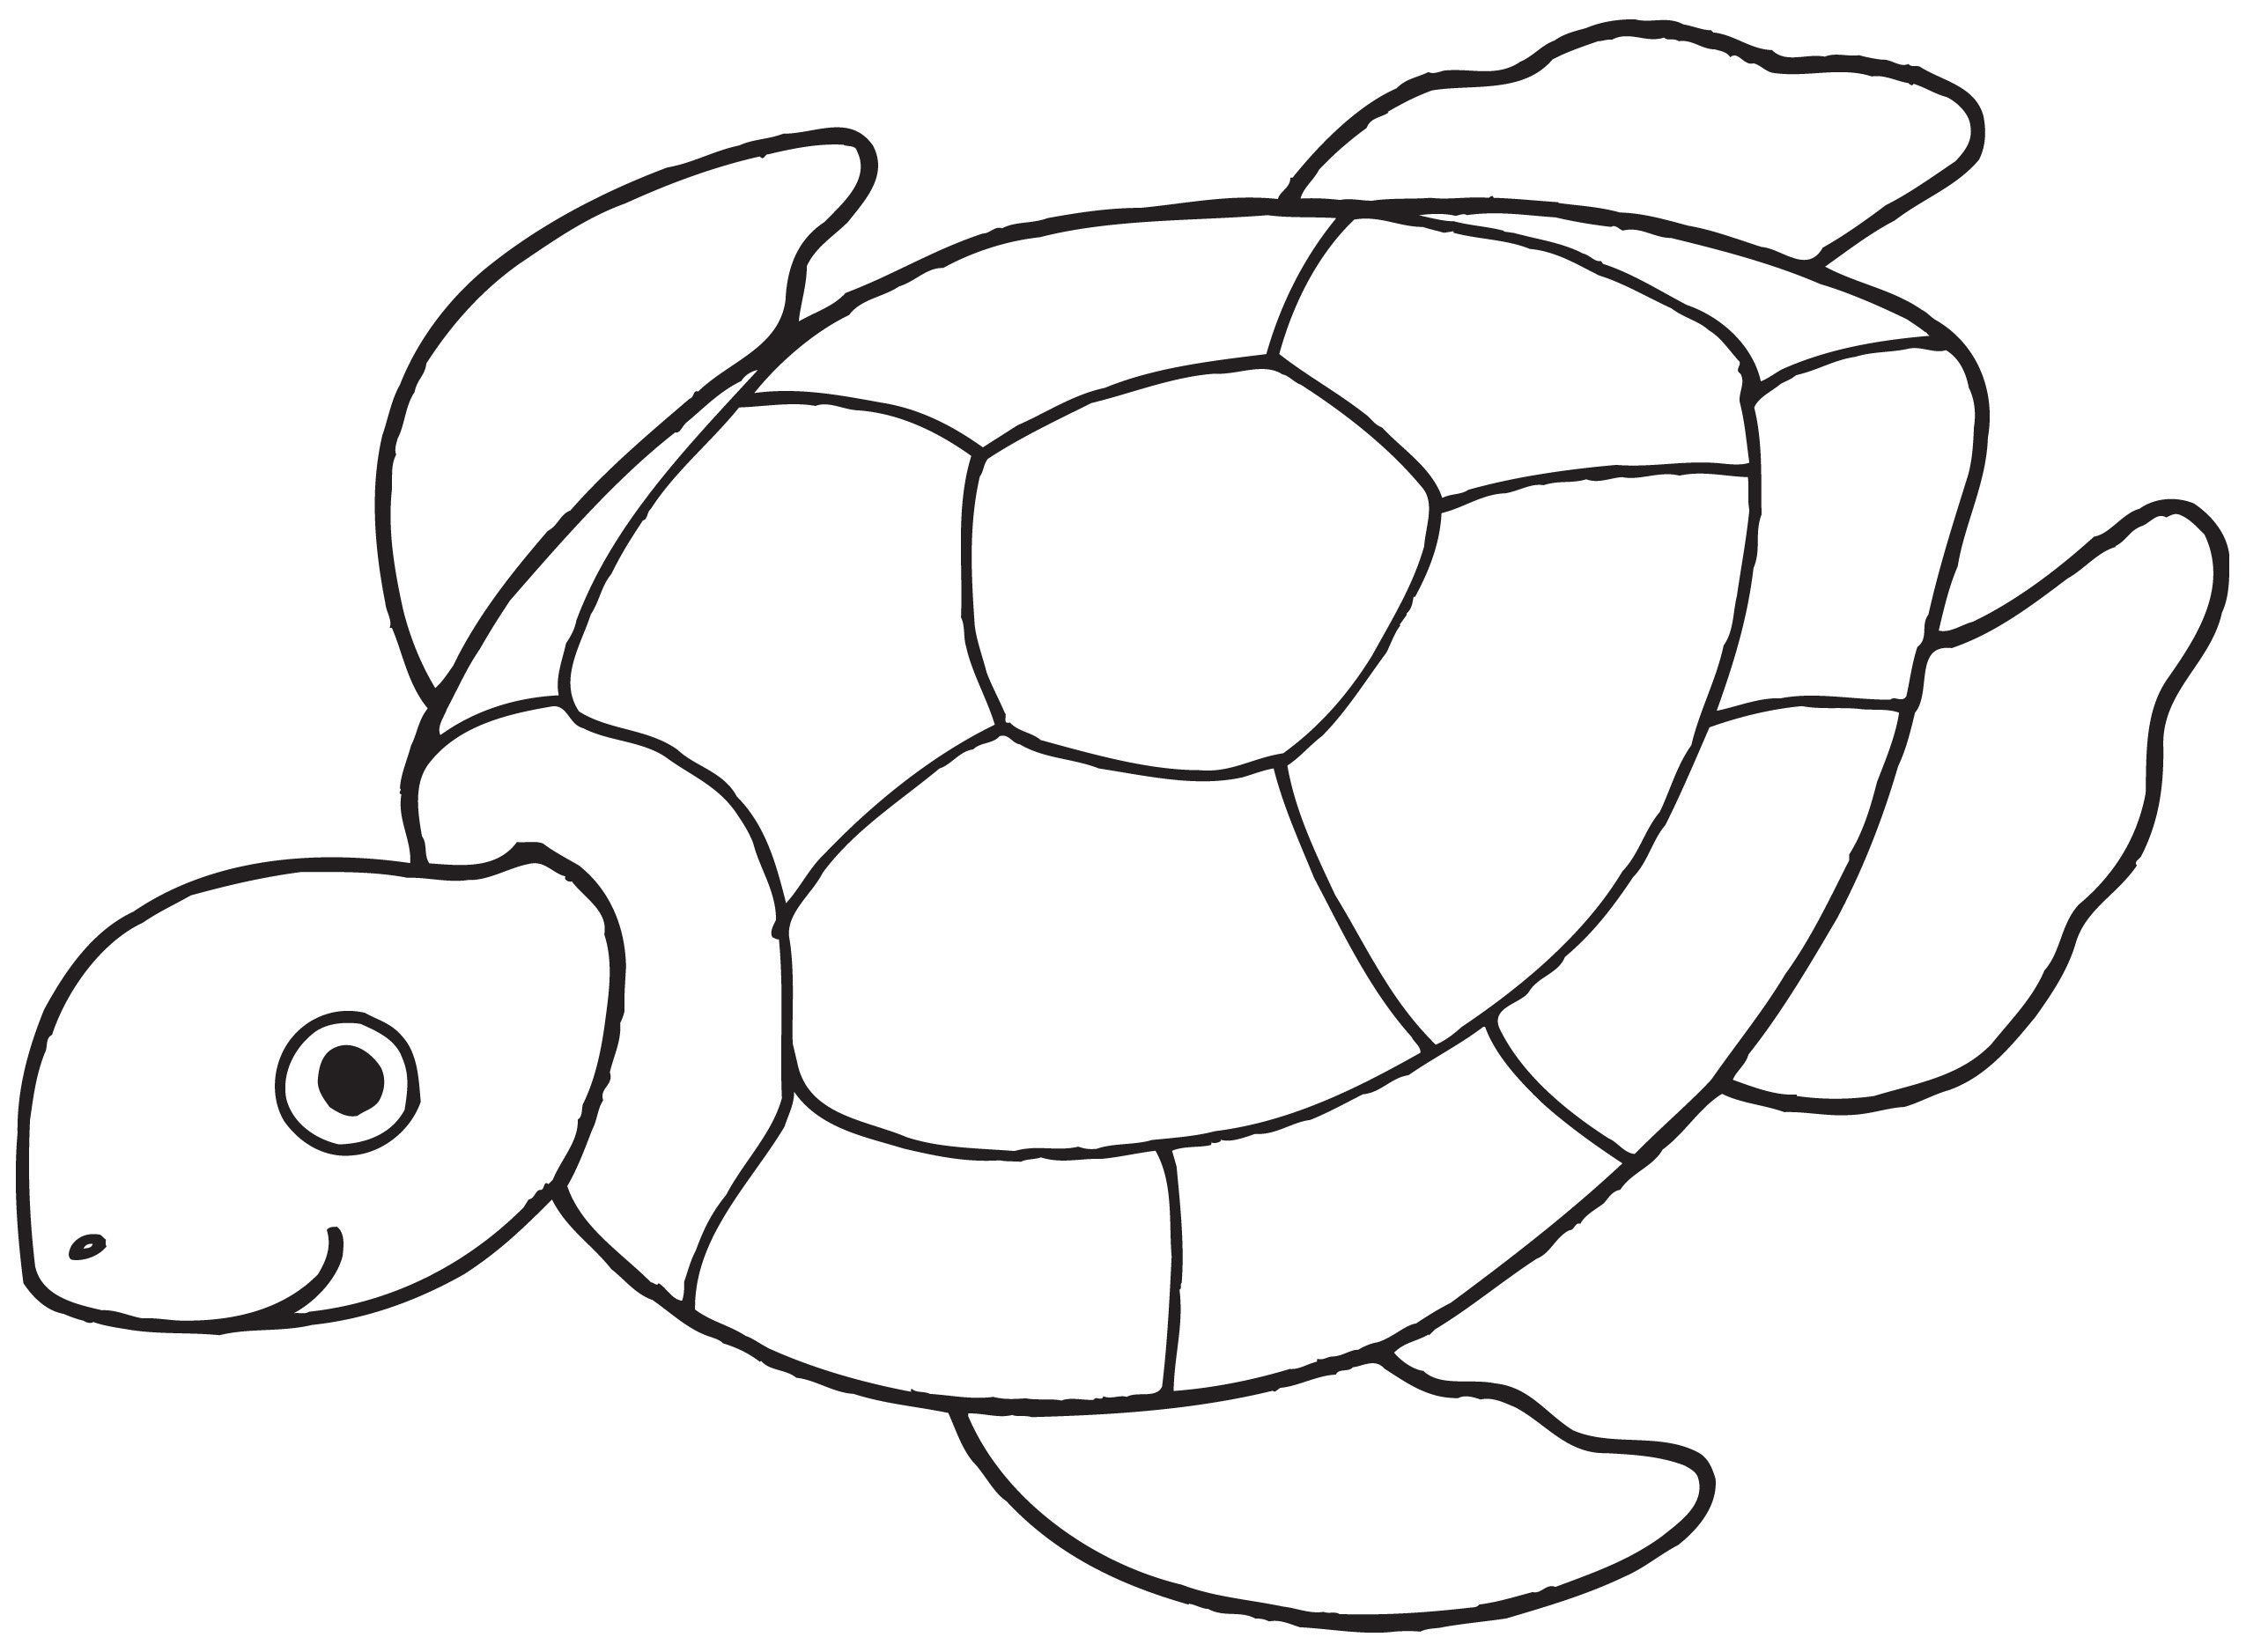 Sea Creatures Black And White Clipart - Clipart Suggest